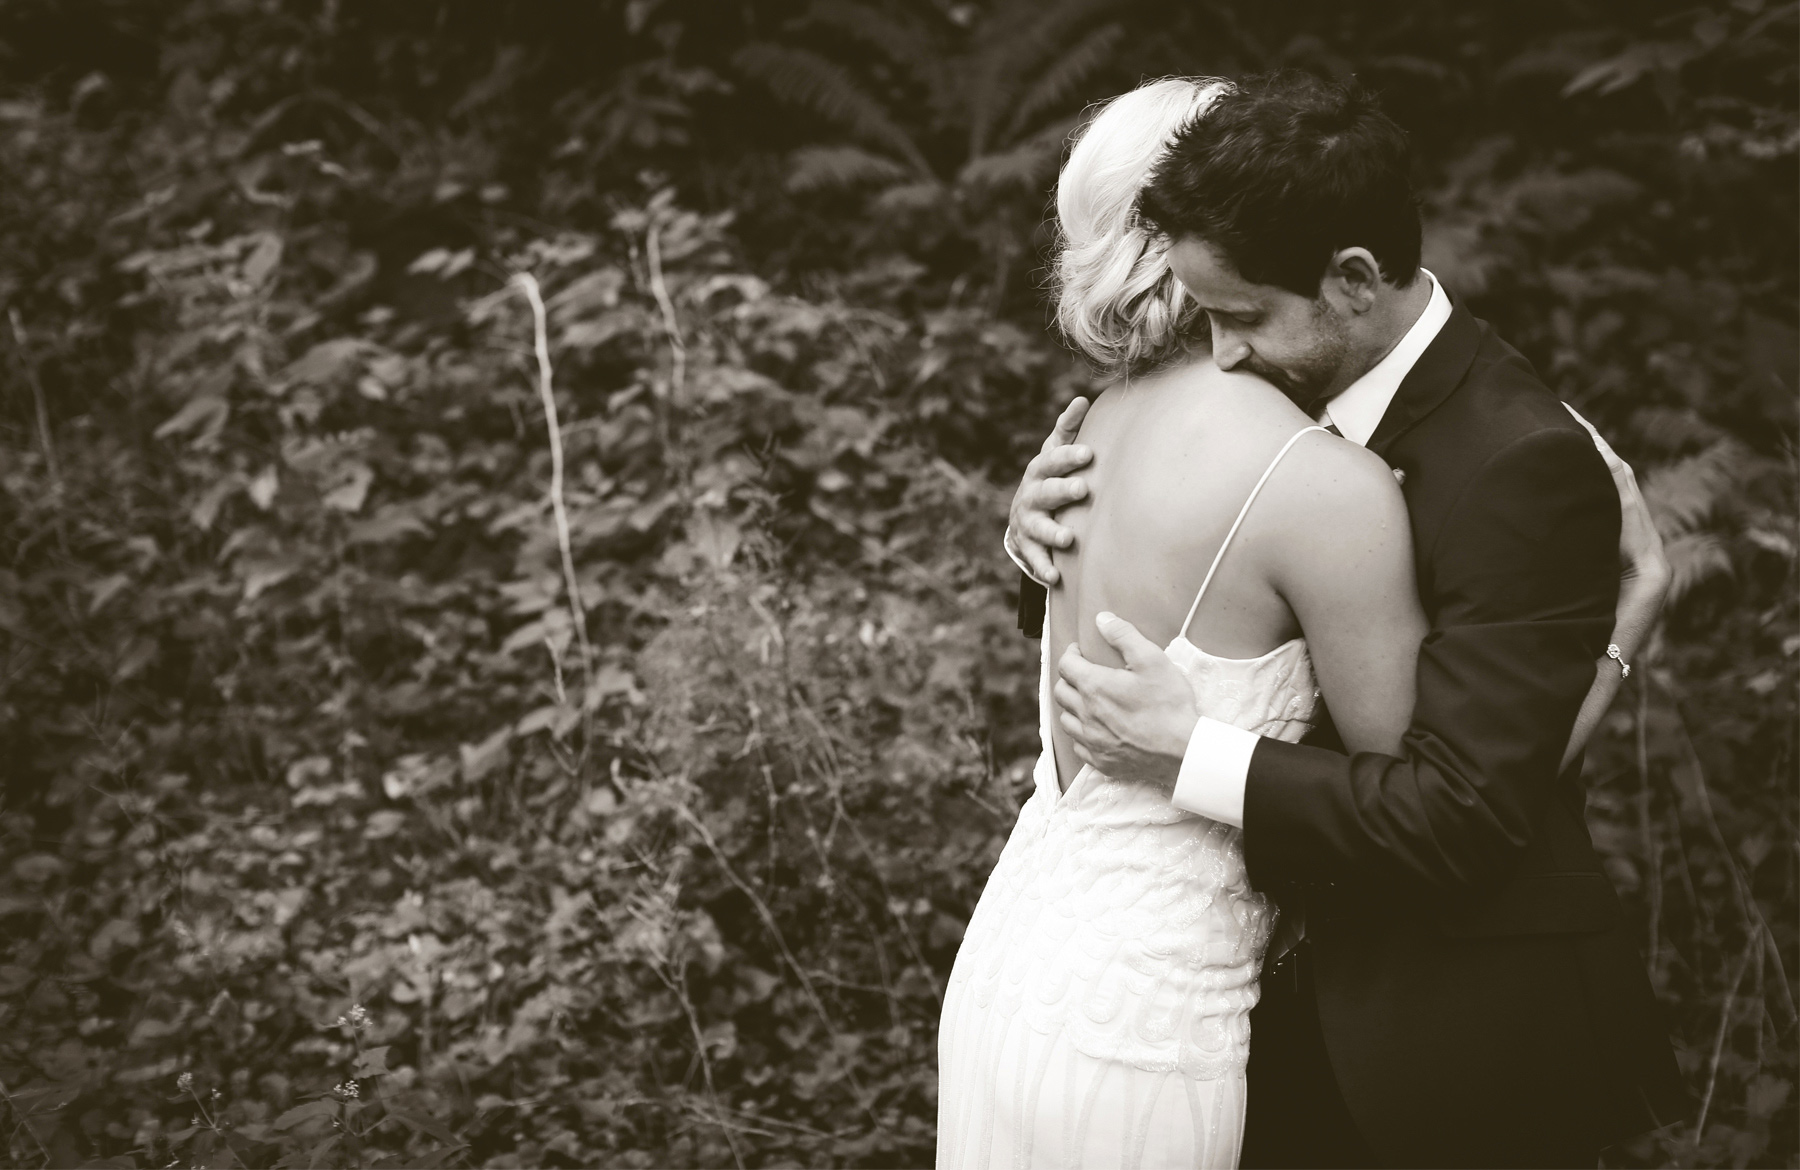 04-Stillwater-Minnesota-Wedding-Photography-by-Vick-Photography-Camrose-Hill-Outdoor-Woods-Rustic-First-Look-Tina-&-Eric.jpg